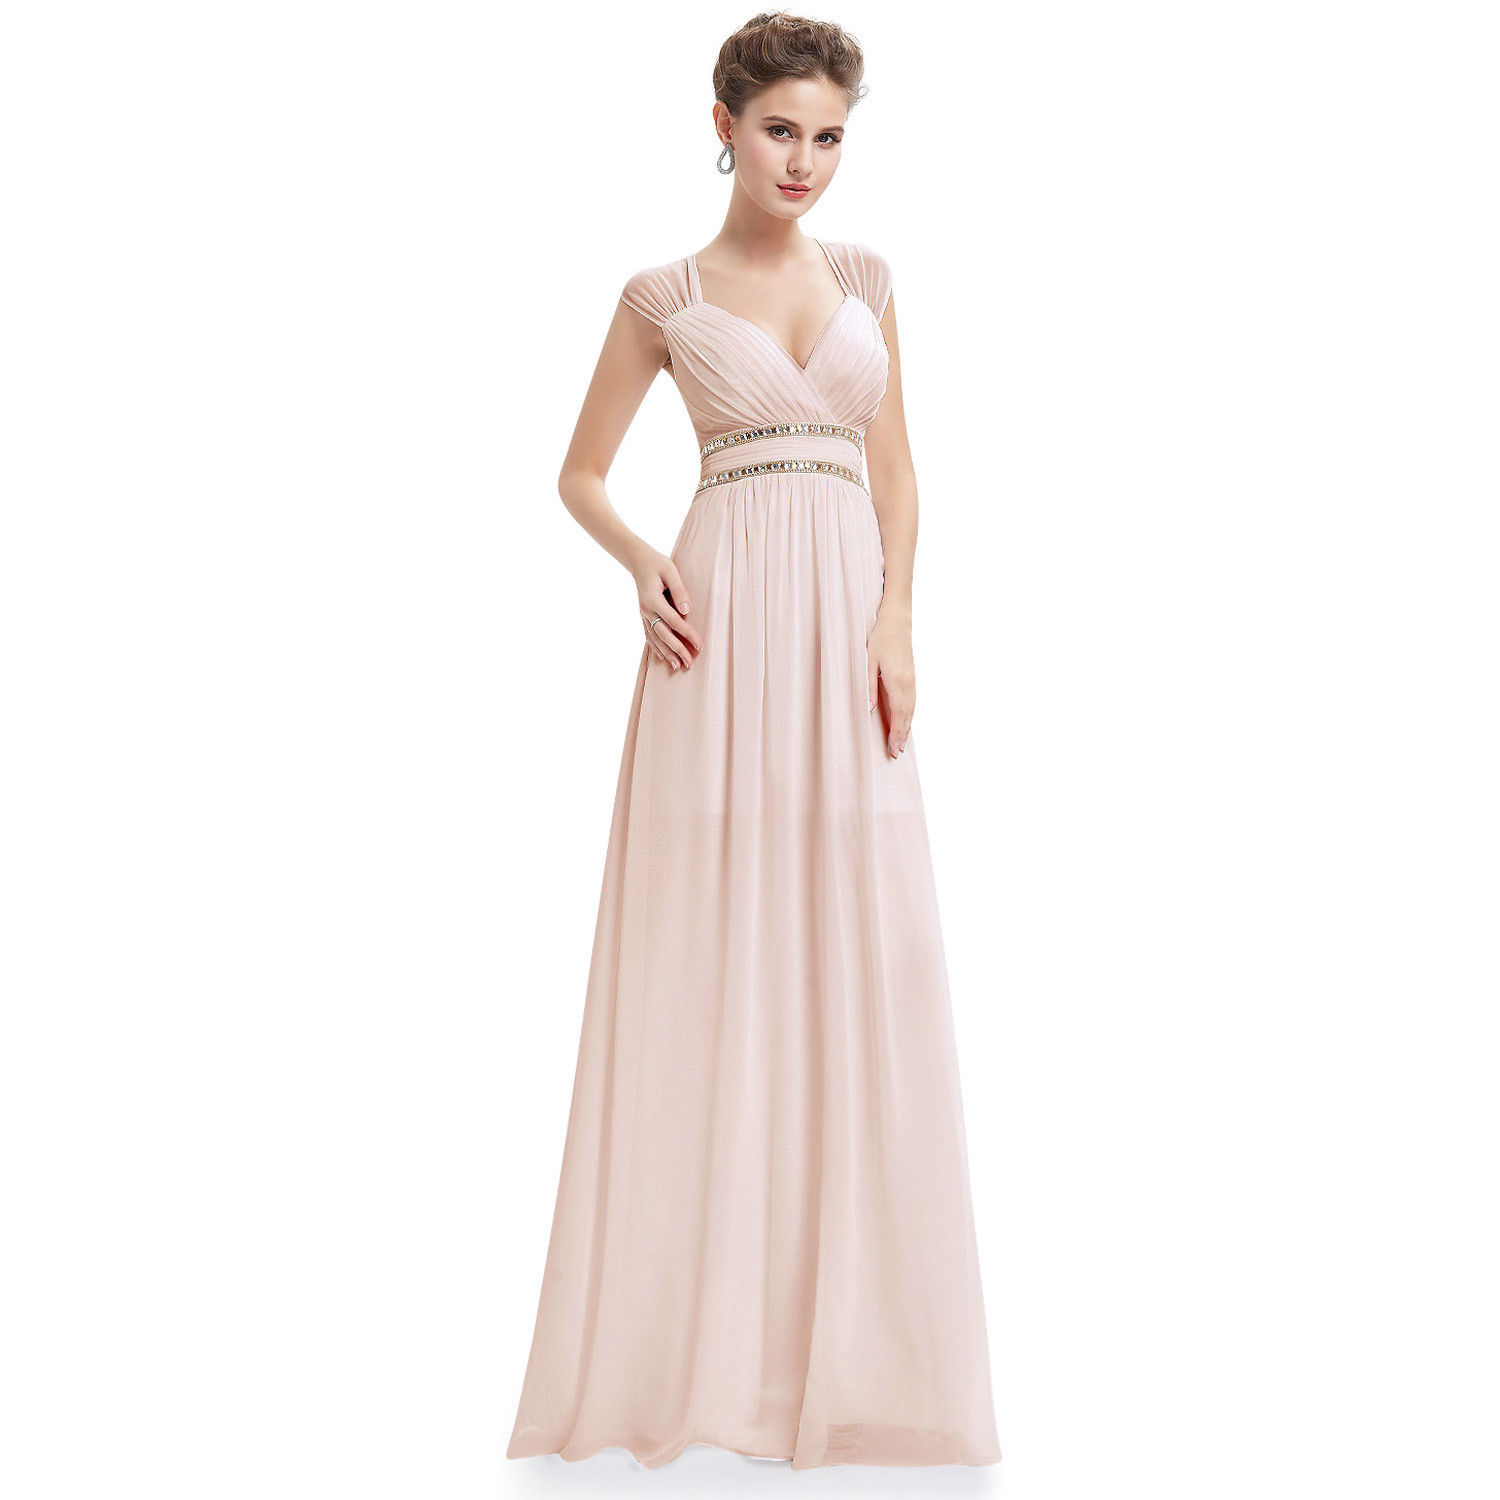 70faa42f2d Ever-Pretty Long Chiffon Evening Formal Dress V-Neck Bead Bridesmaid Gown  08697